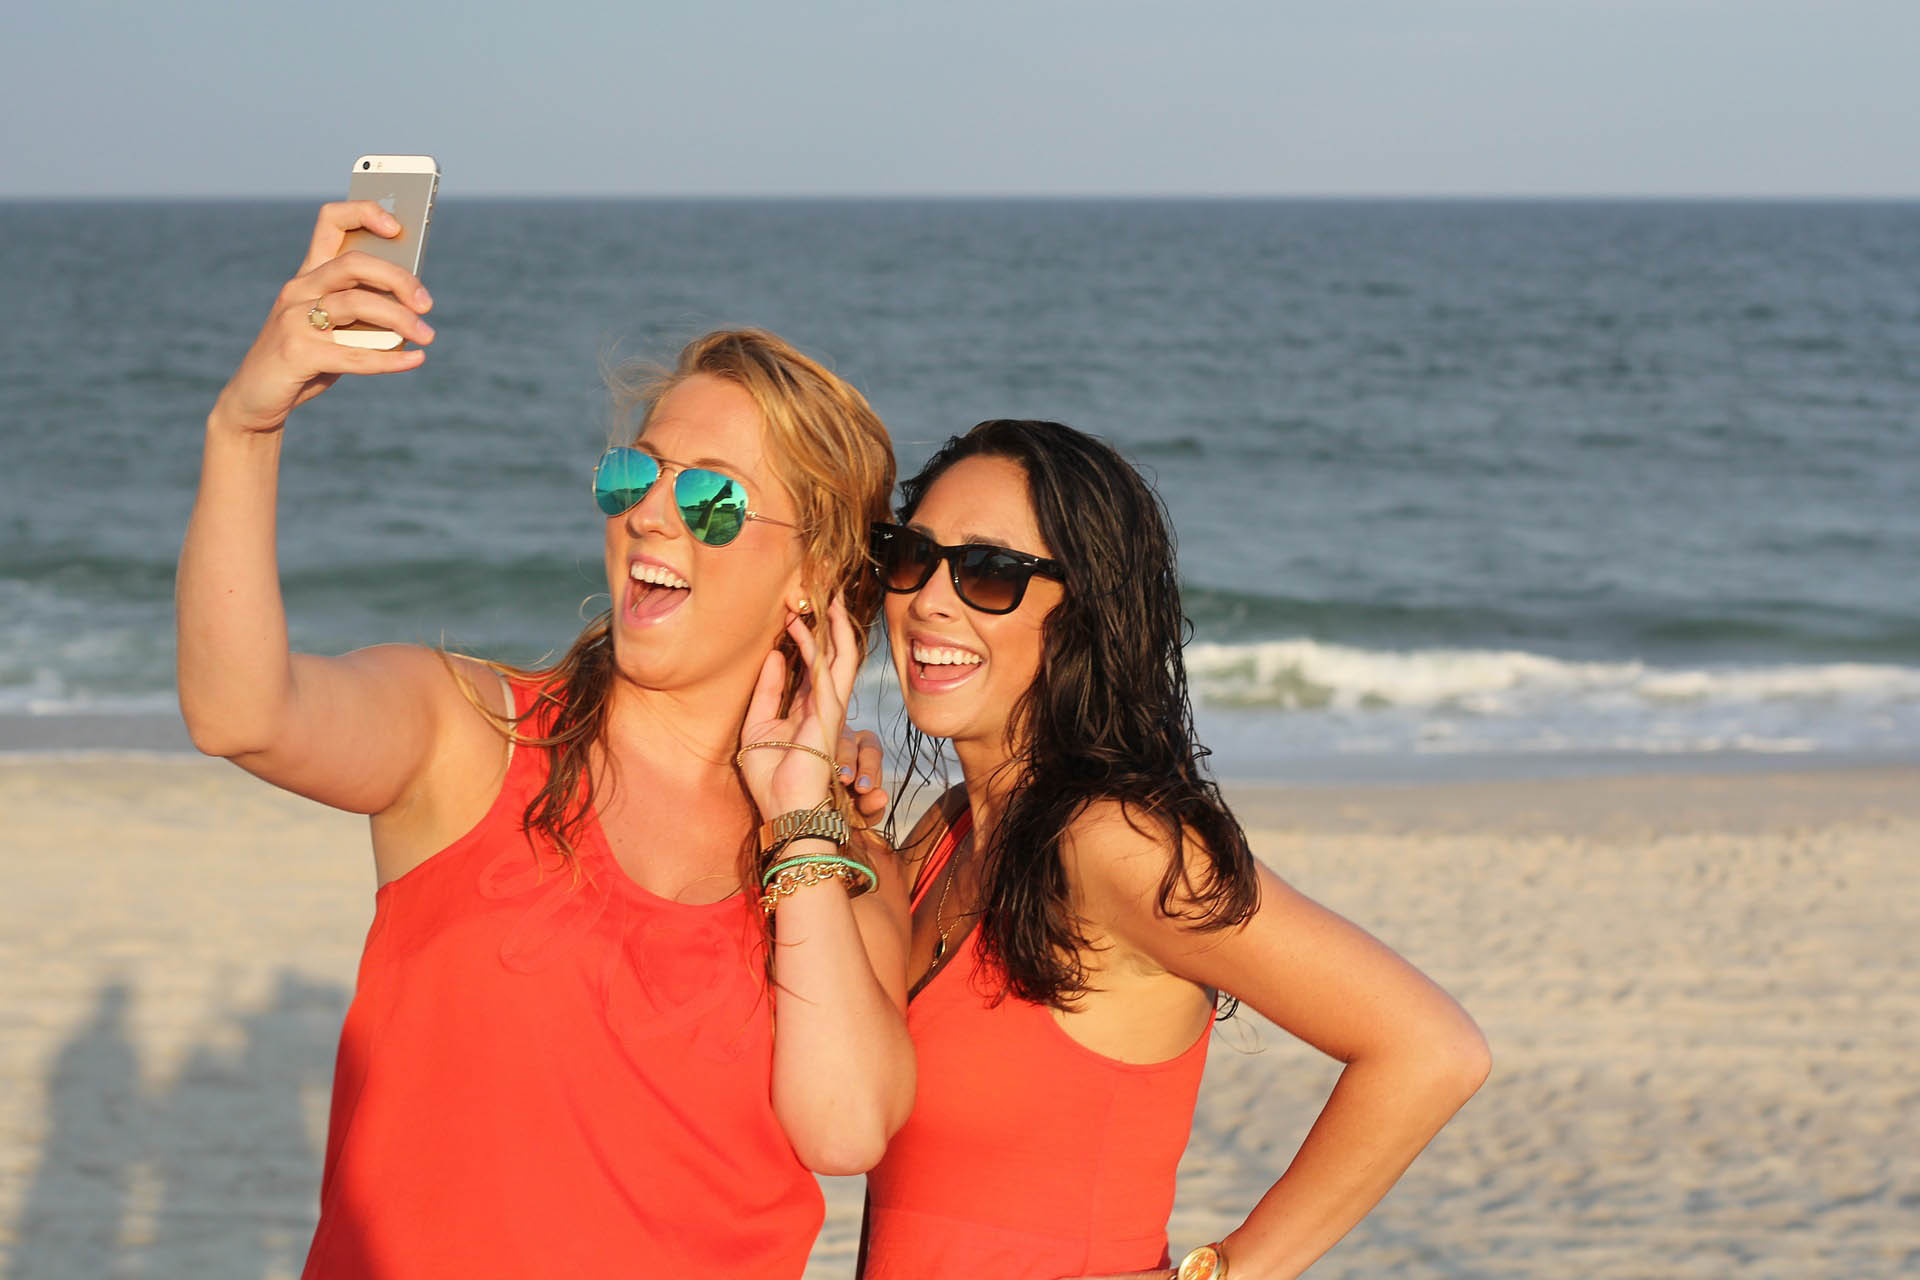 Say 'so long' to the shutter button with the Selfie Stick app